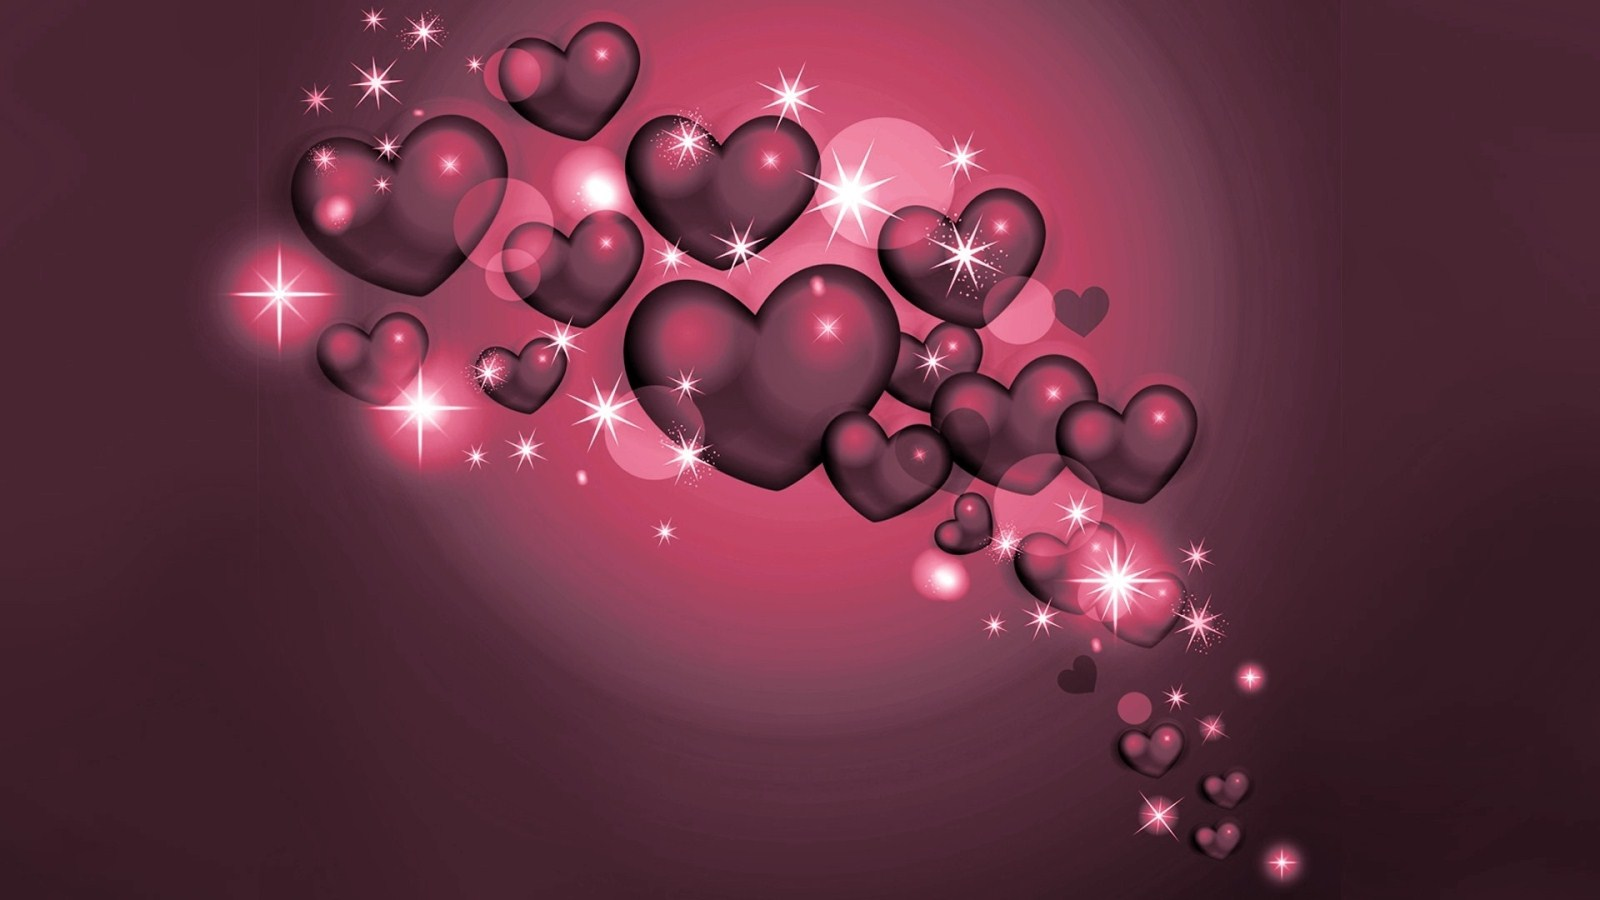 Wallpaper Hd 3d I Love You : 3D Love Wallpaper - WallpaperSafari